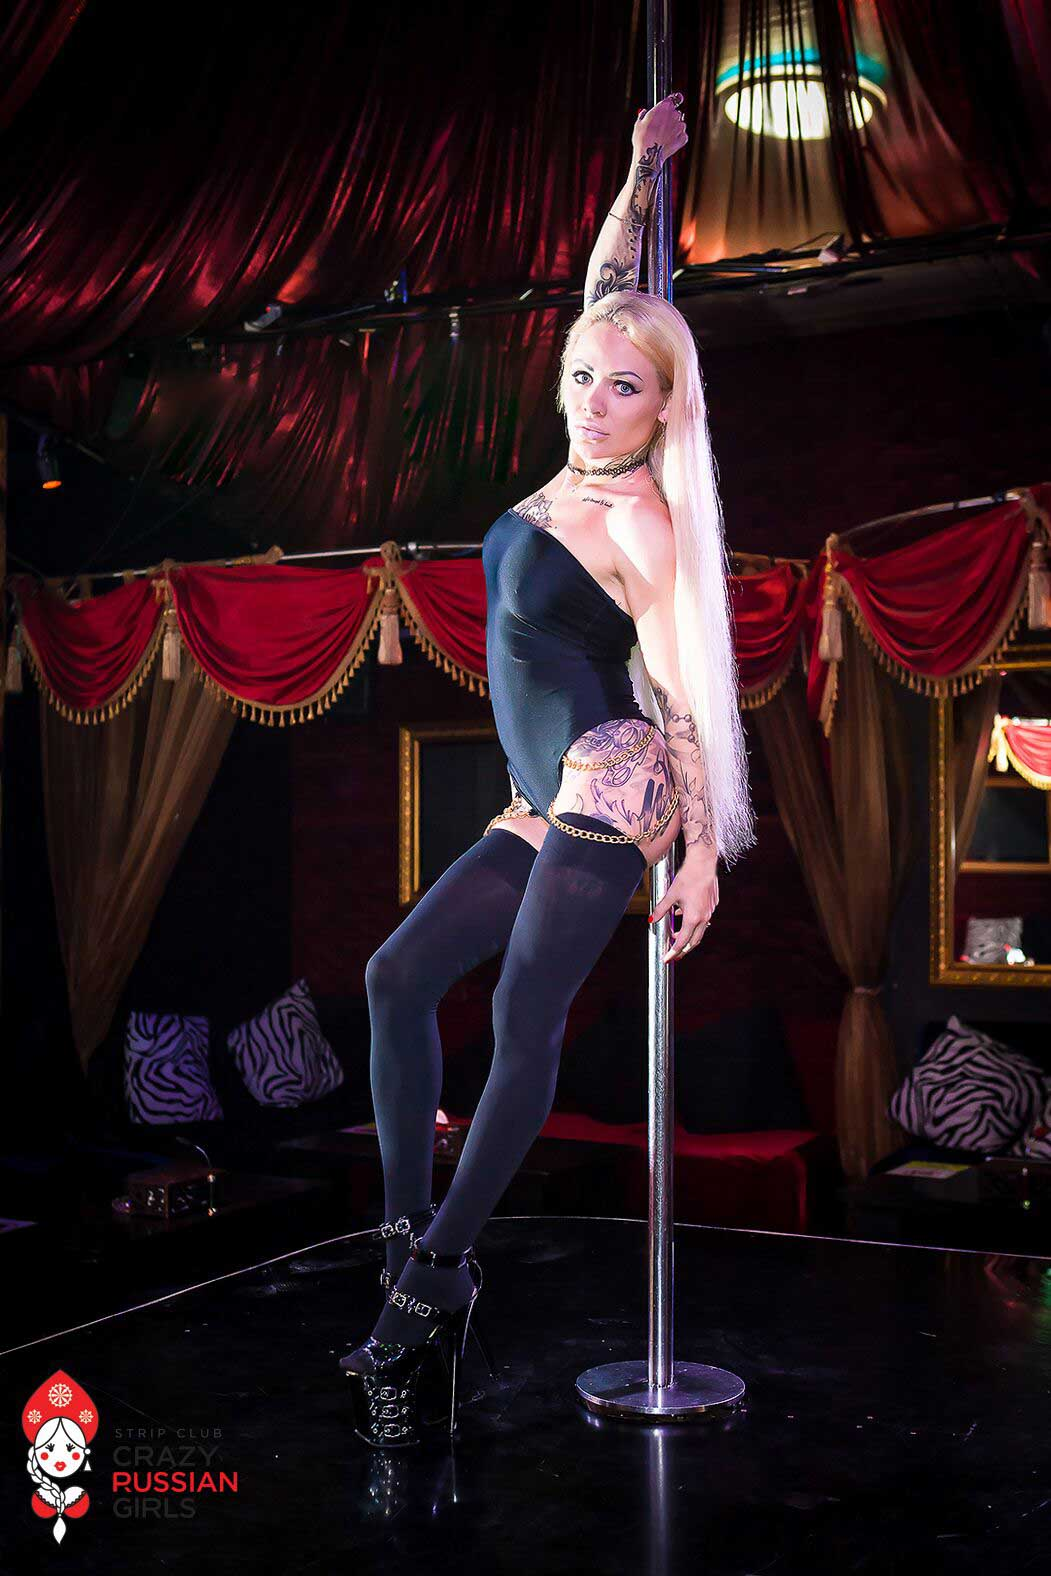 STRIP CLUB Crazy Russian Girls